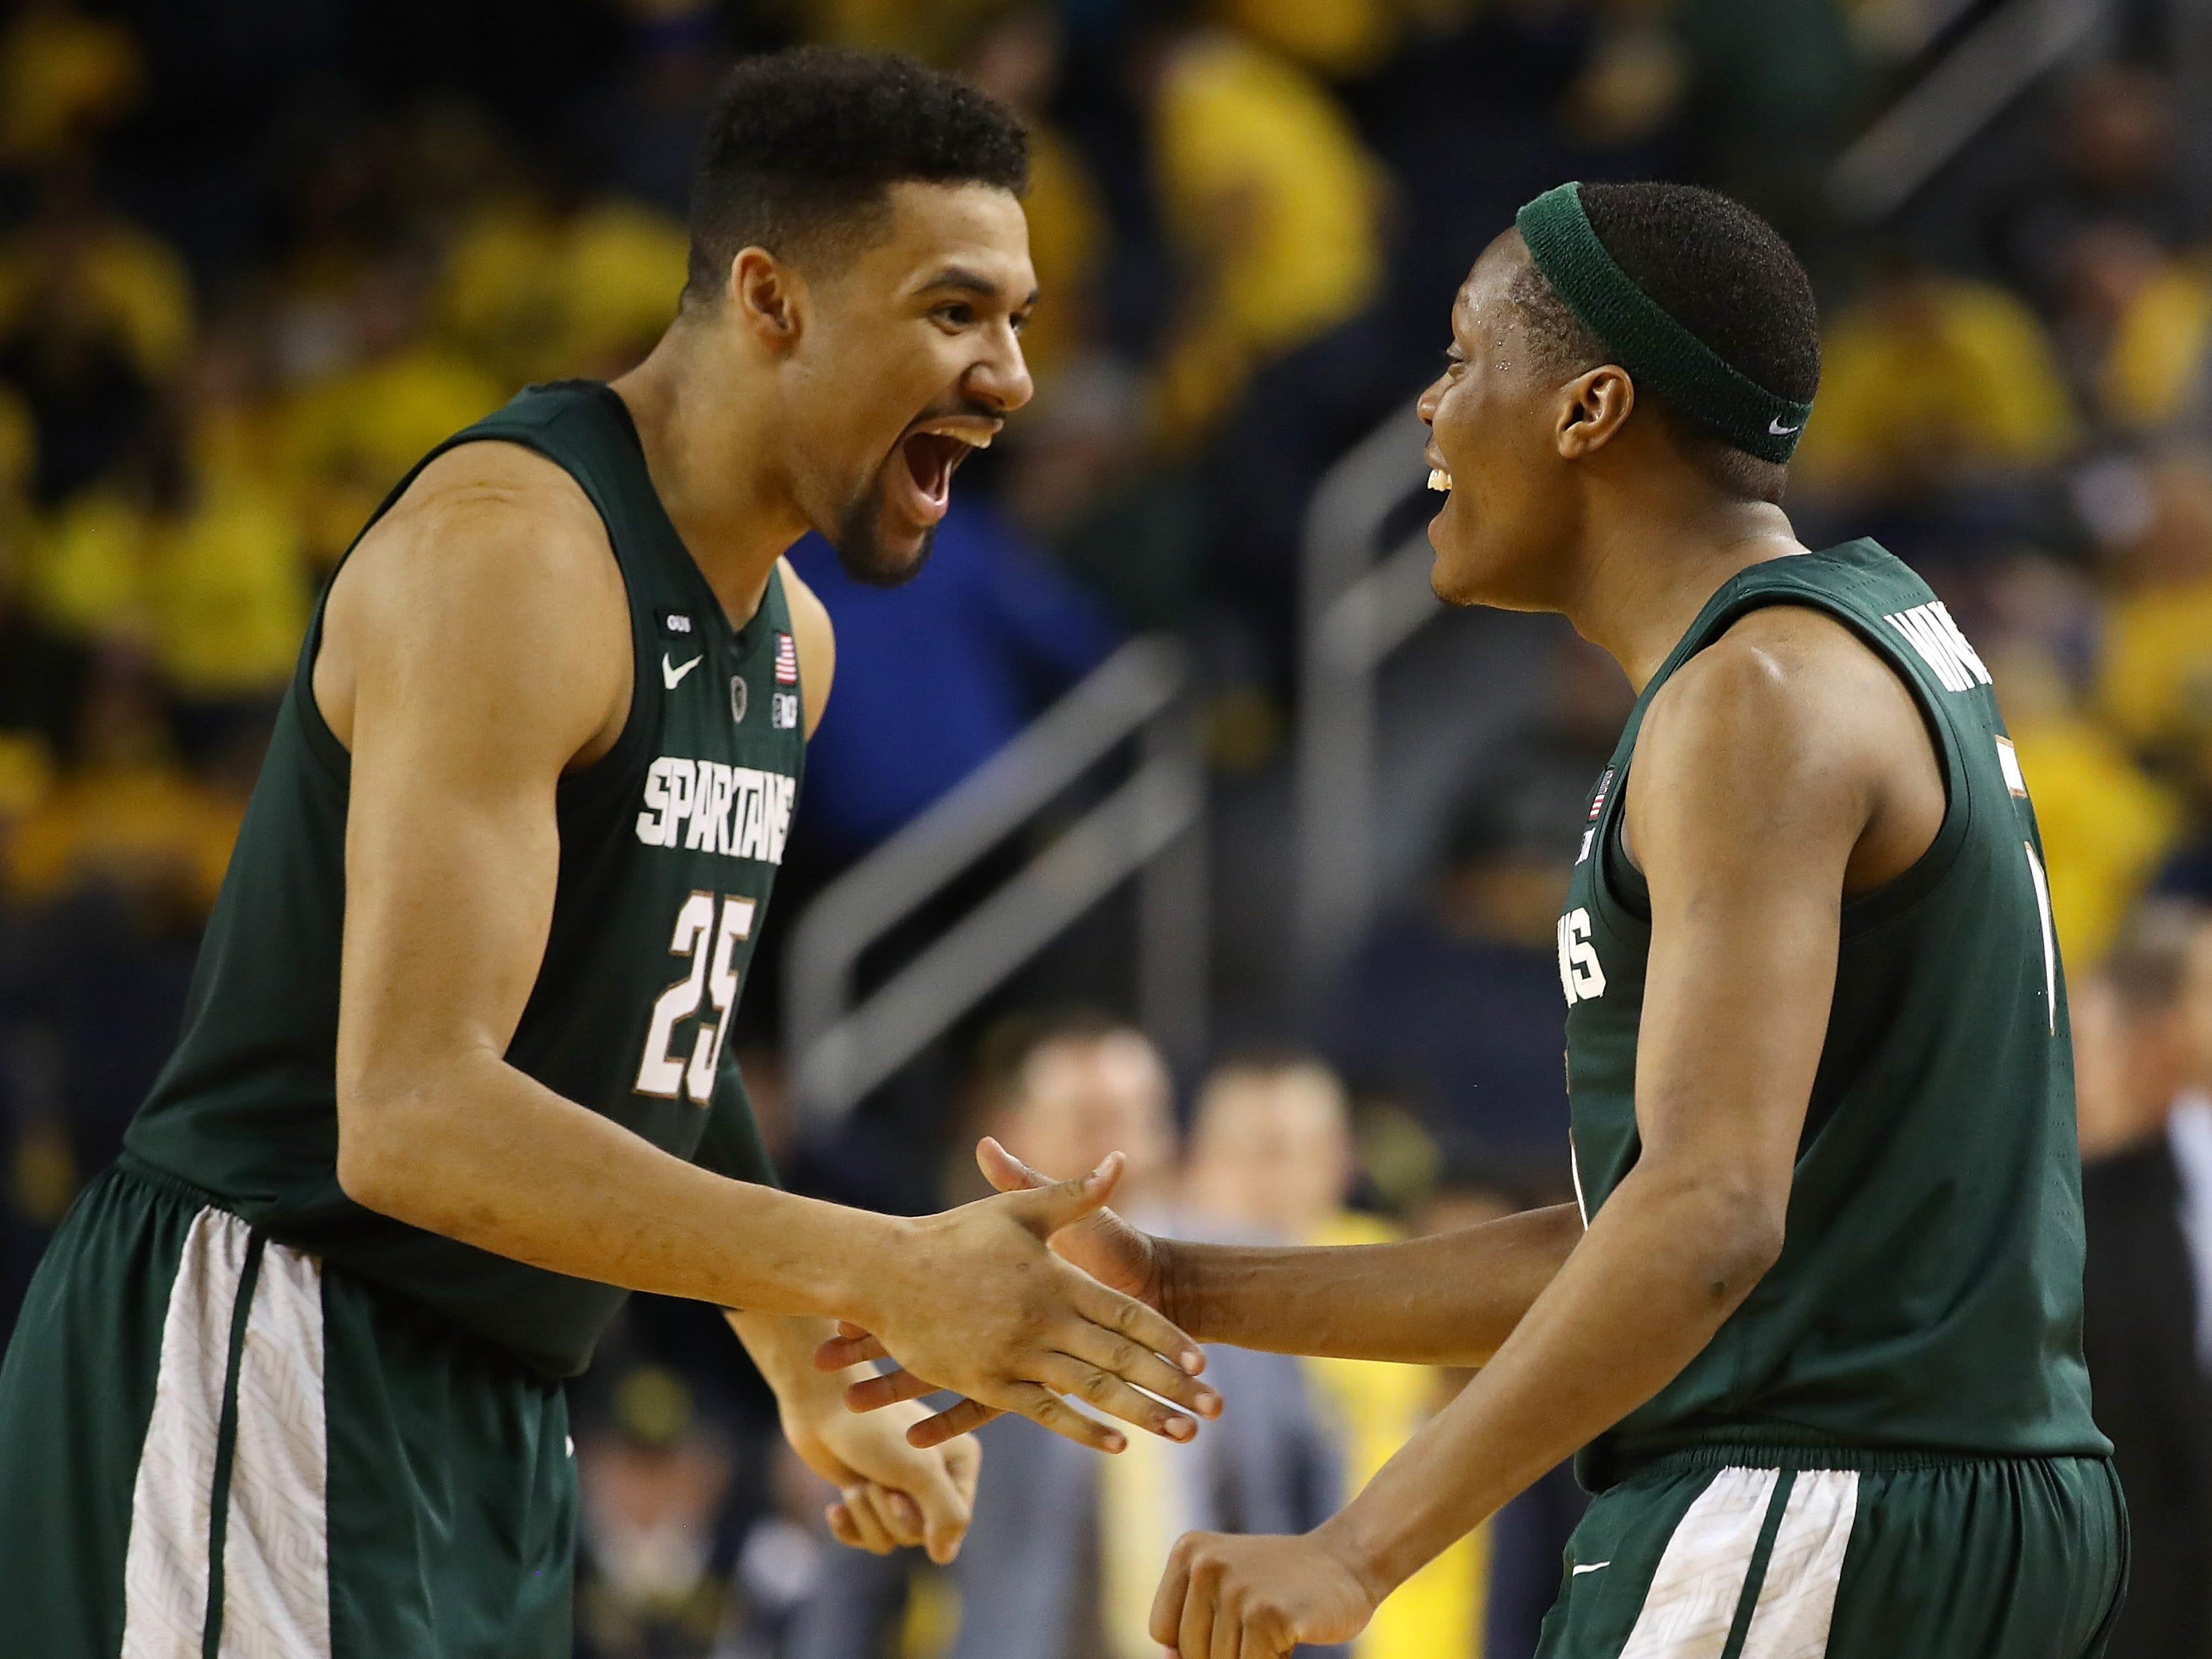 Kenny Goins, left, and Cassius Winston react after Michigan State's 77-70 win over Michigan at Crisler Center on Feb. 24, 2019 in Ann Arbor.